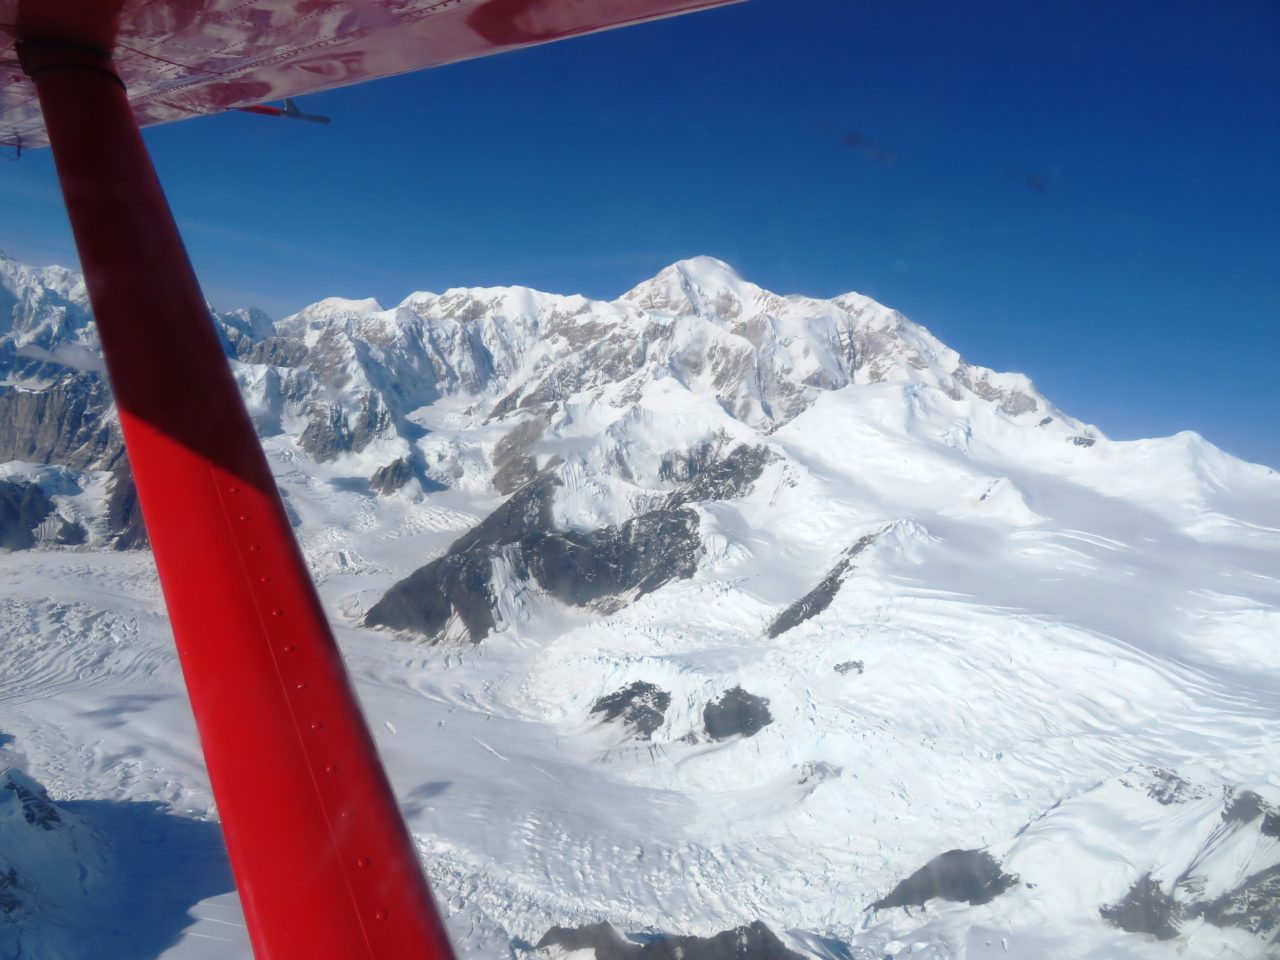 Flight around Mount Denali during our Alaska Cruise with Princess Cruises